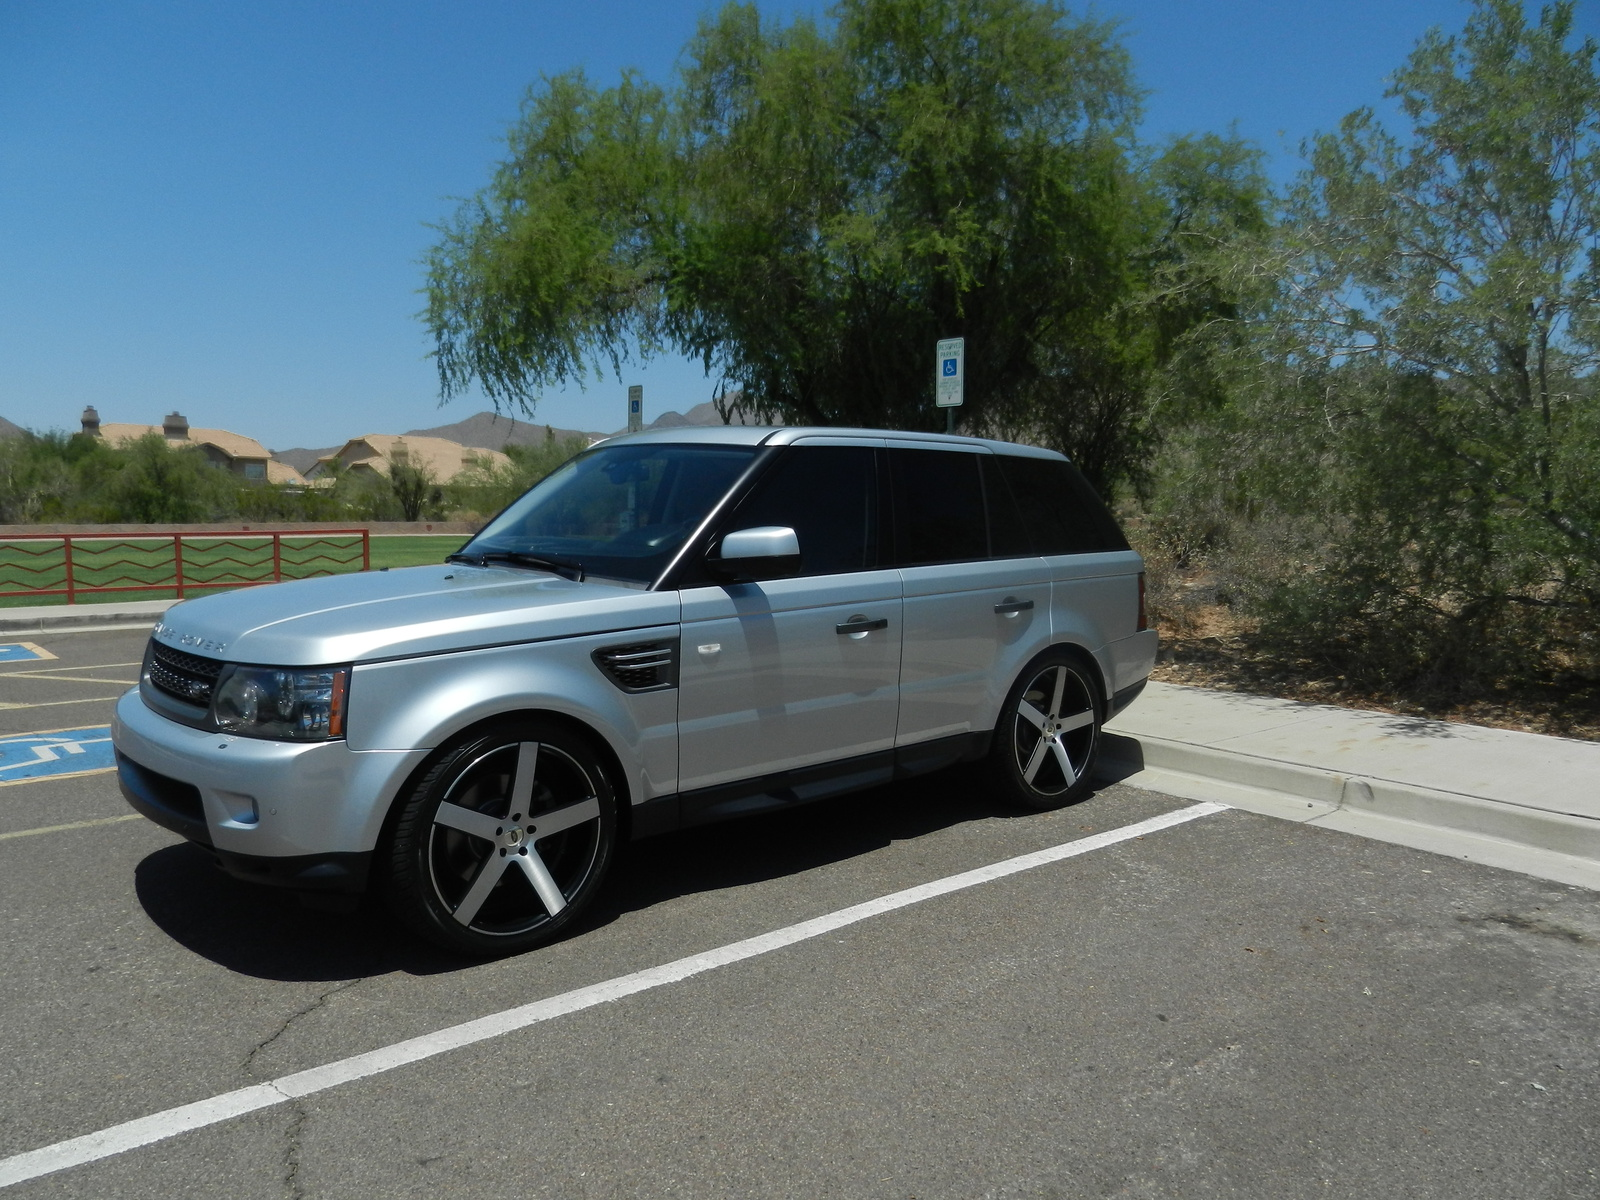 Land Rover Range Rover Sport Questions I am considering ing a